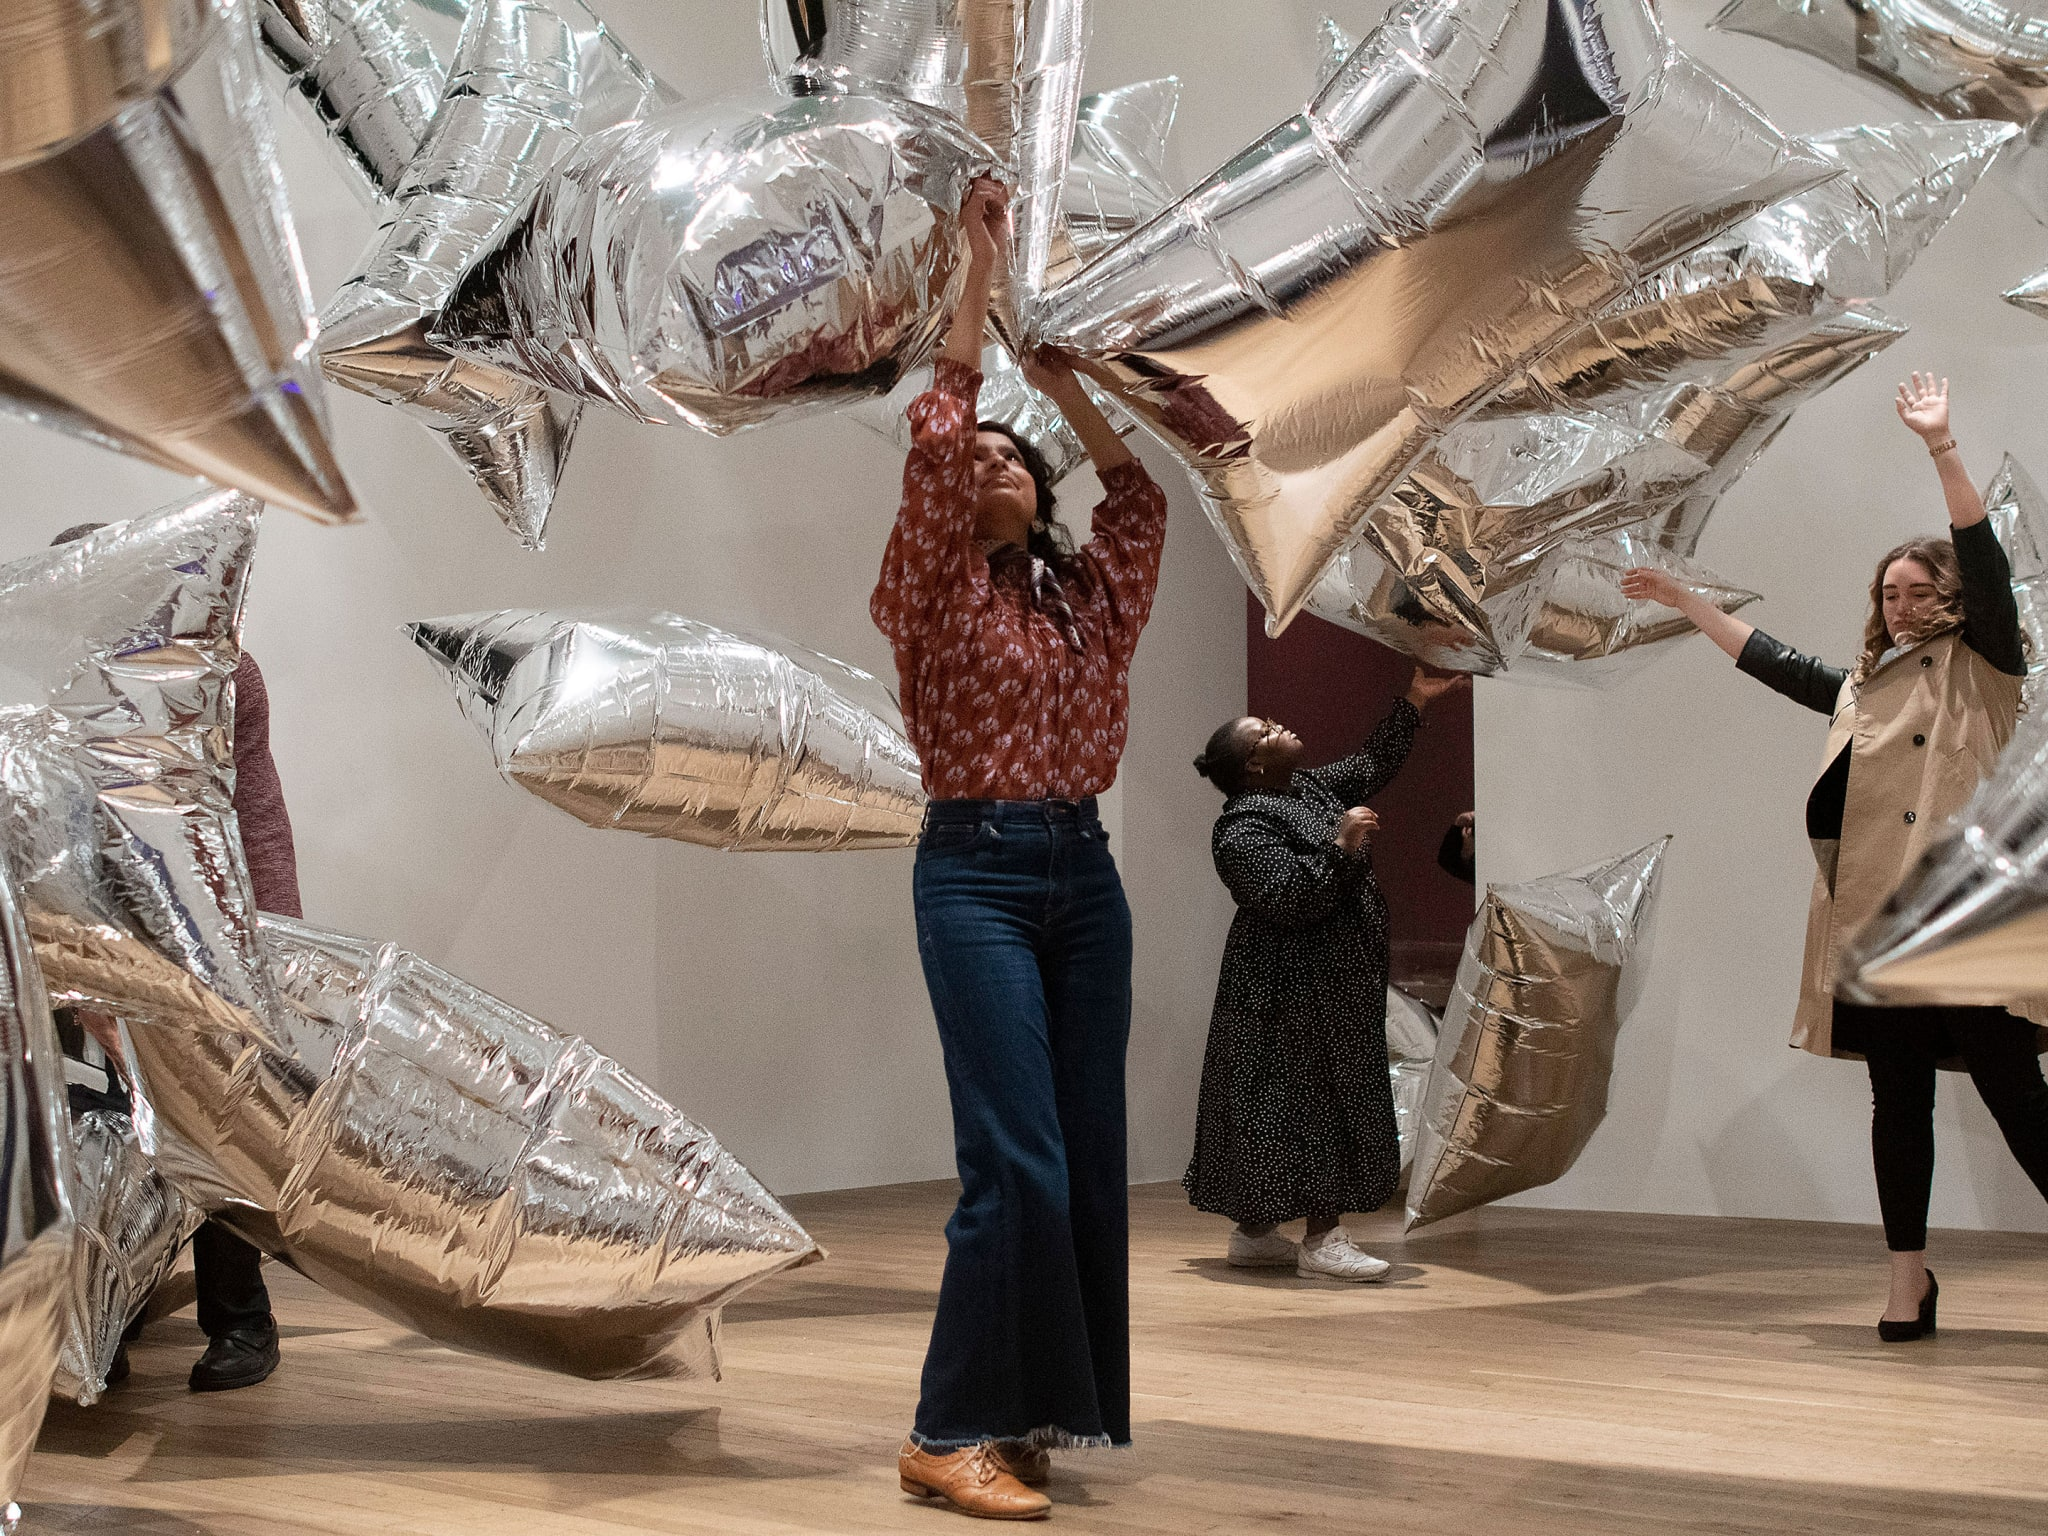 A woman bouncing silver balloons in the air in an art gallery.